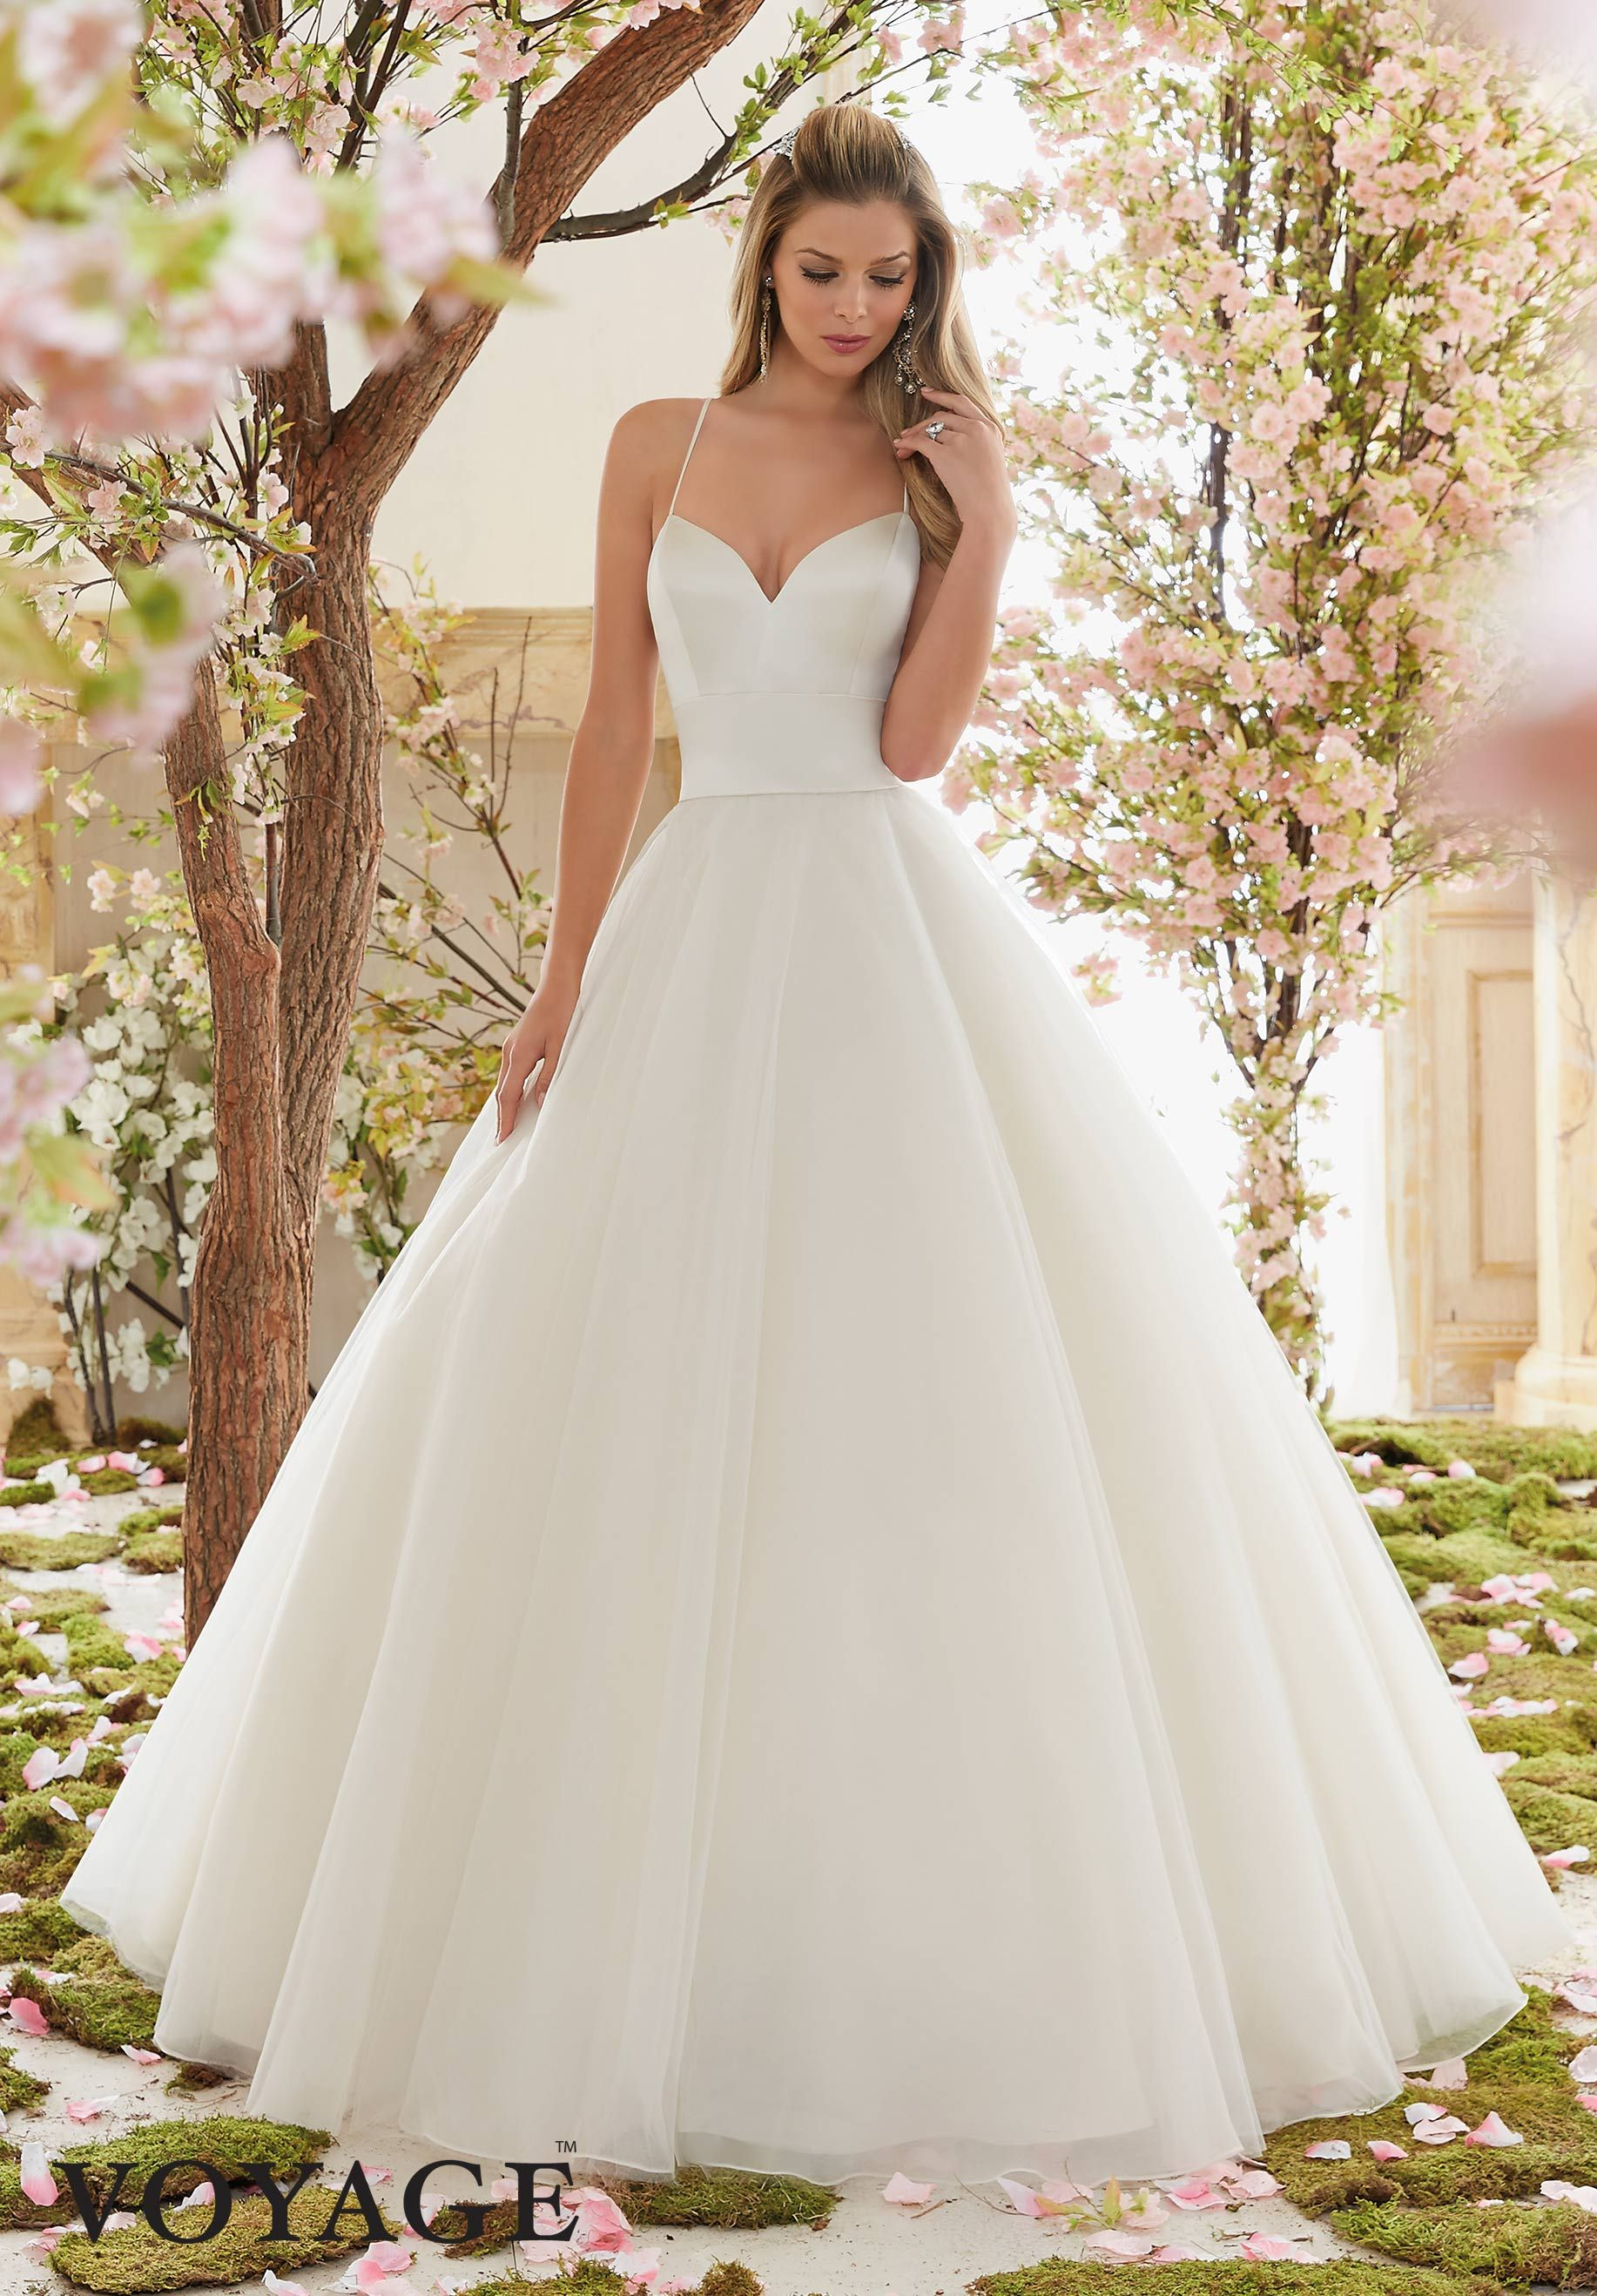 Wedding Dresses By Voyage Featuring Duchess Satin And Tulle Ball Gown Colors Available White